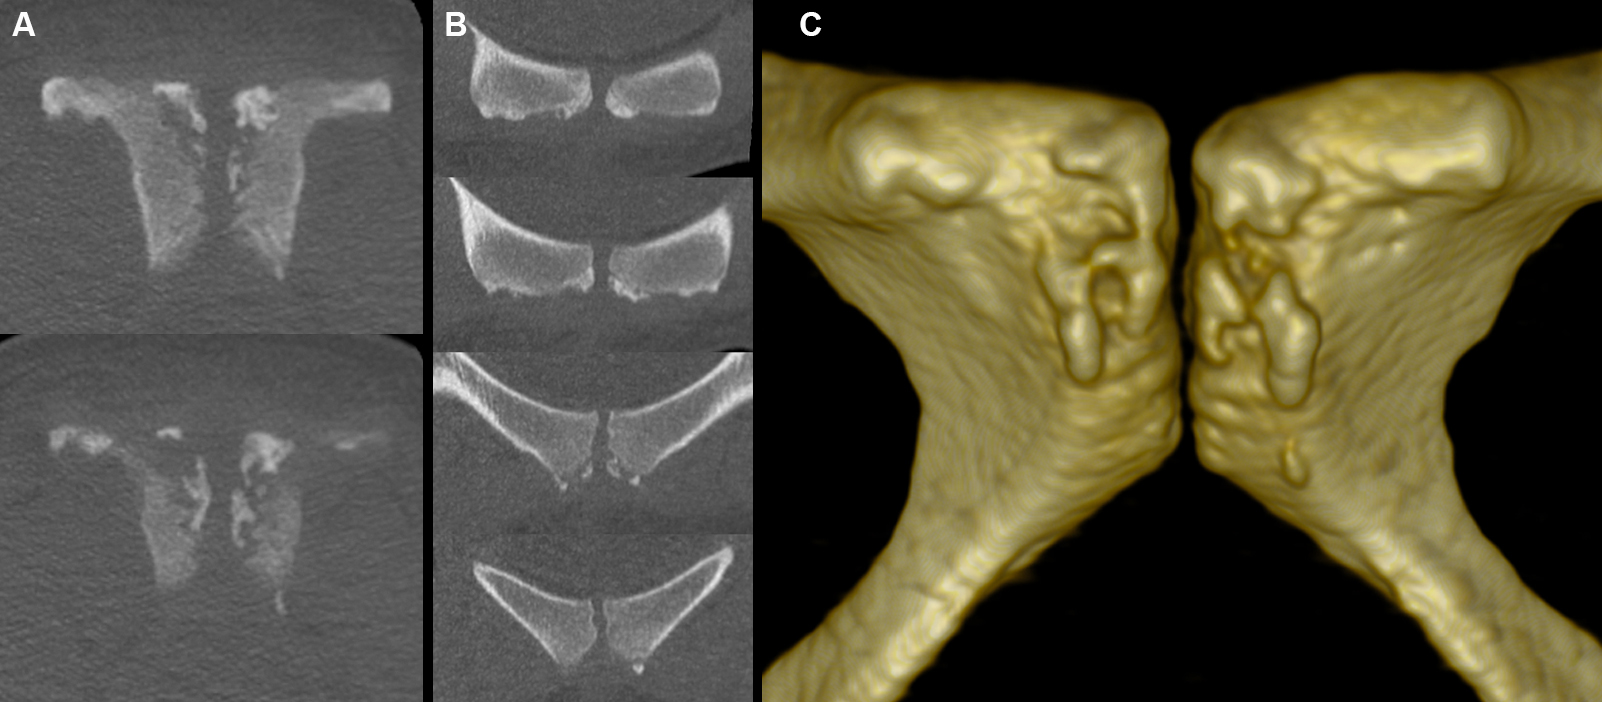 Fig 3. Normal secondary centres of pubic ossification. Coronal (A), axial (B) and volume-rendered (C) images from a CT scan of a normal 23 year old female subject show bilaterally open pubic apophyses. Note the process of ossification begins centrally within the apophyseal cartilage, is variable in pattern and may be asymmetric, and can be either unifocal or multifocal. On CT, physeal plate widening is consequently best assessed on axial images.